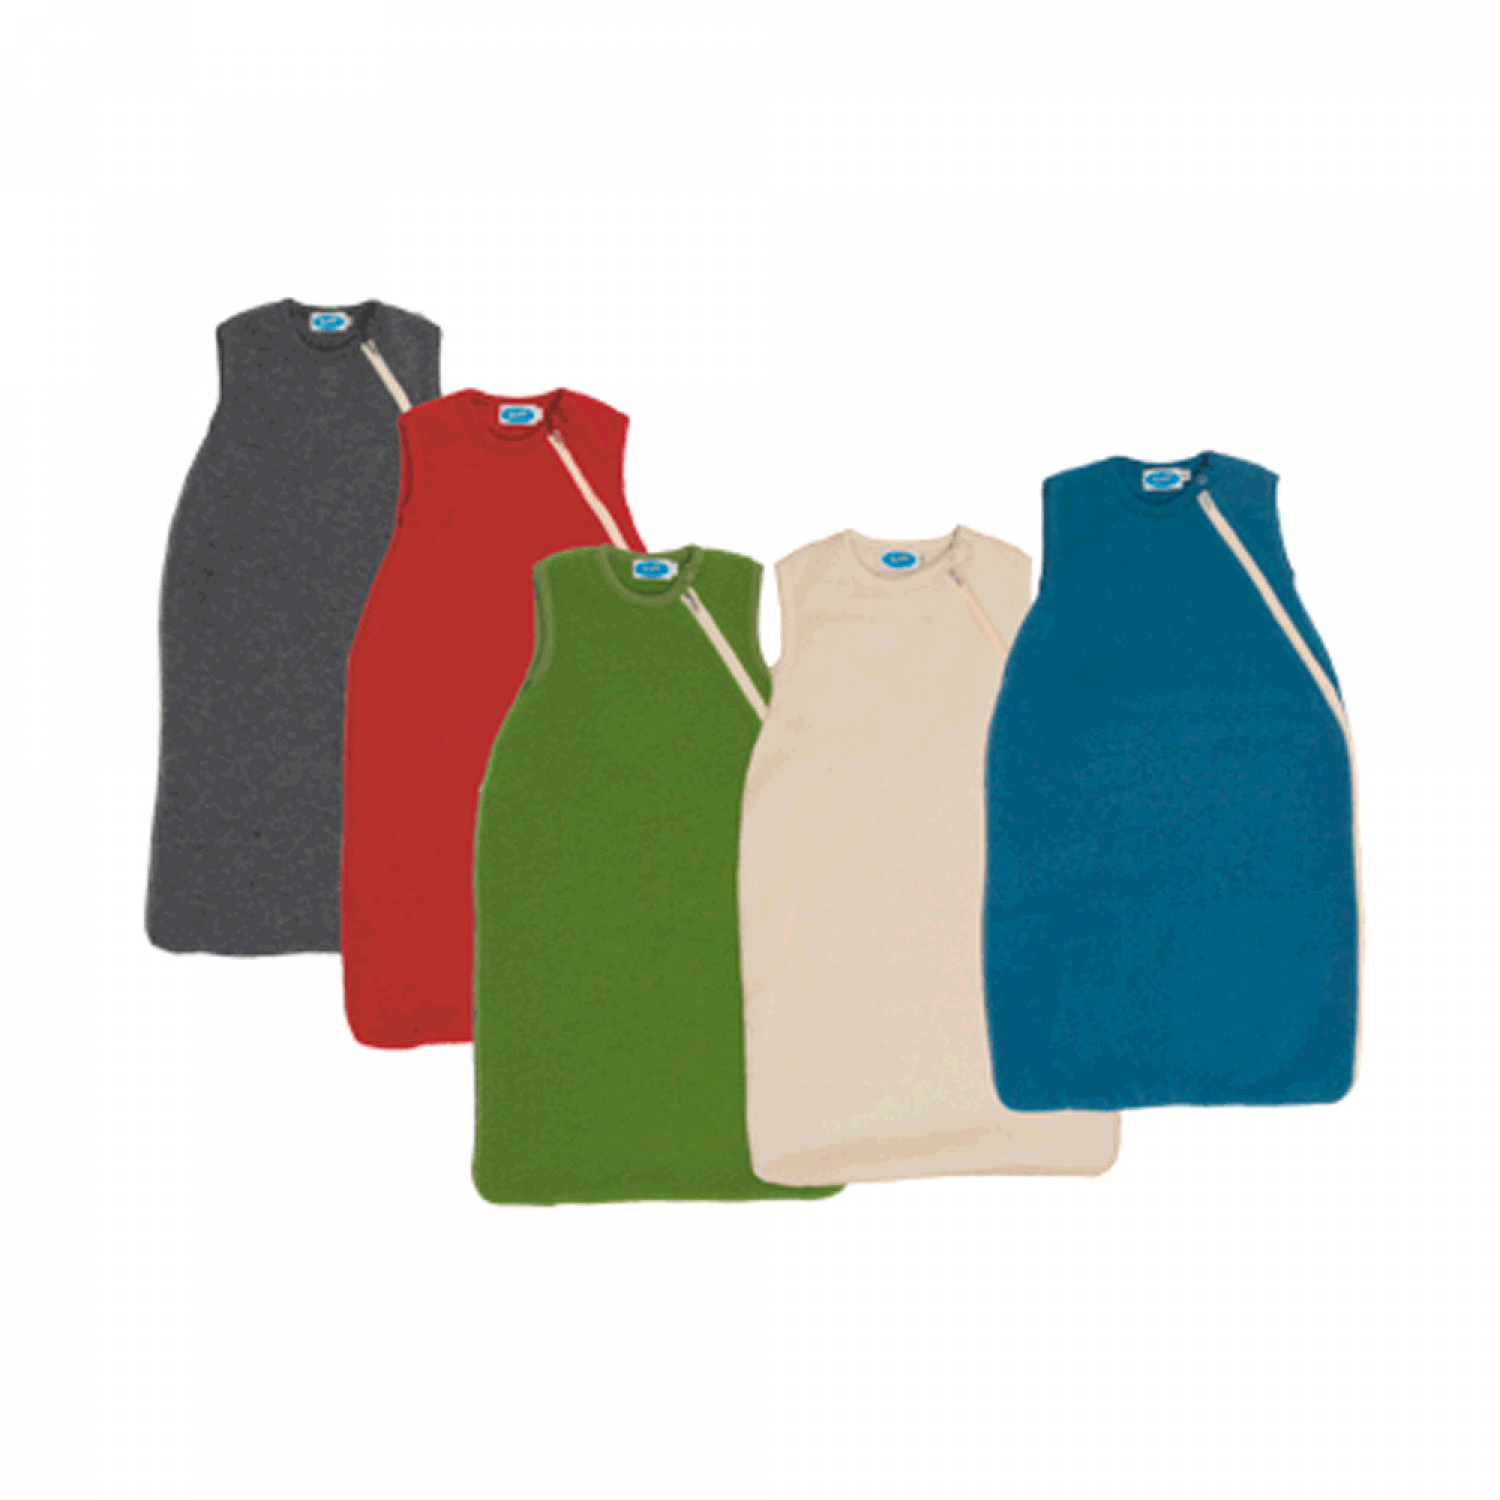 Organic Wool Fleece Sleeping Bag without Sleeves | Reiff